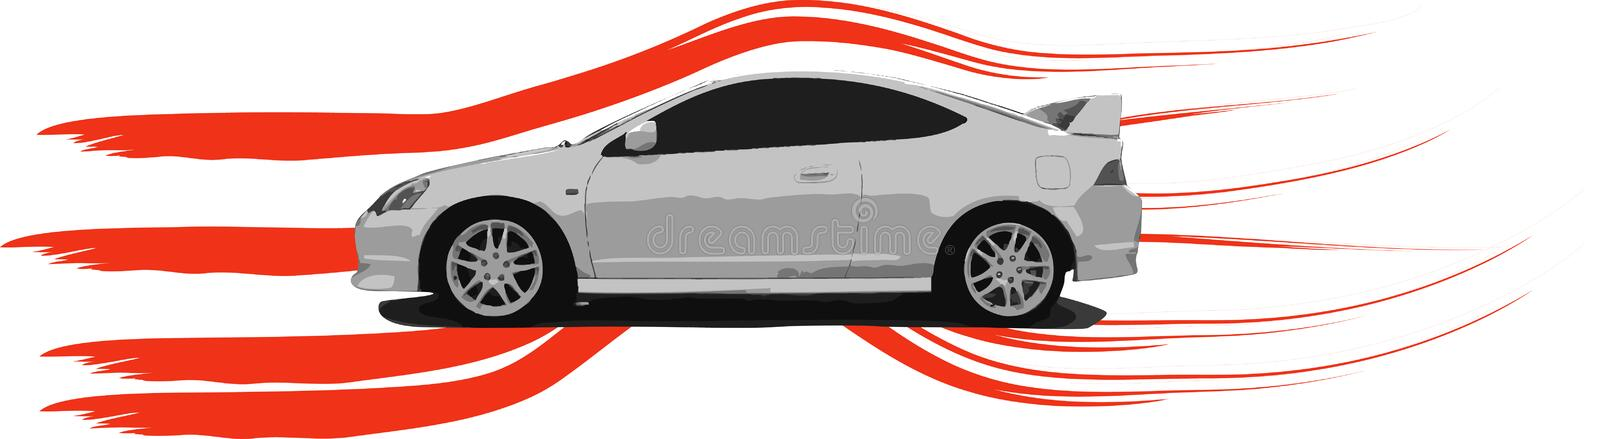 Illustration d'Acura RSX photo stock